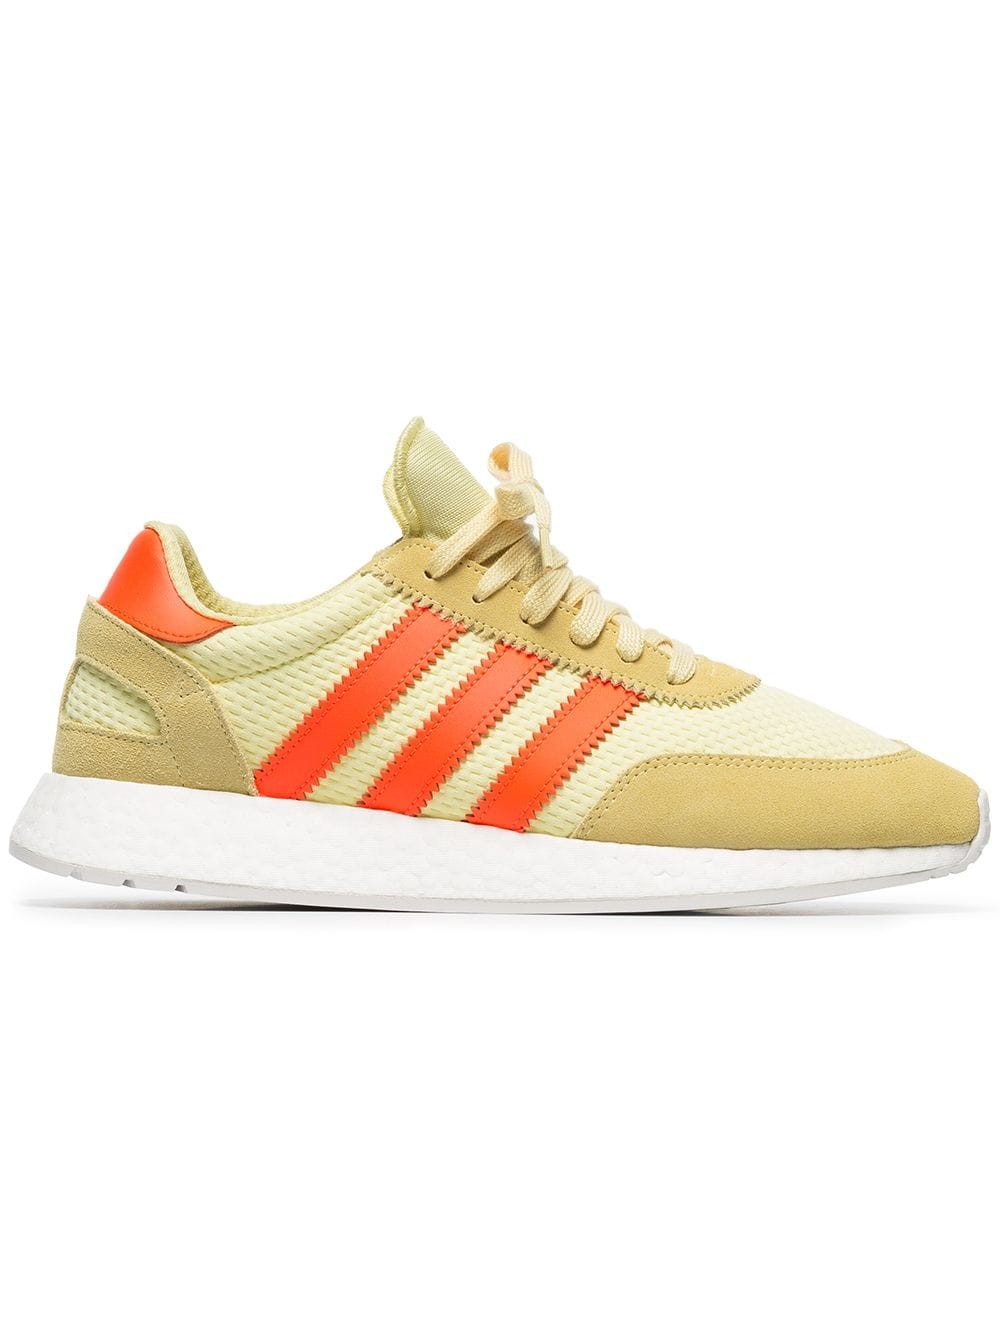 Adidas Originals I-5923 Leather Sneakers Jaune D96604